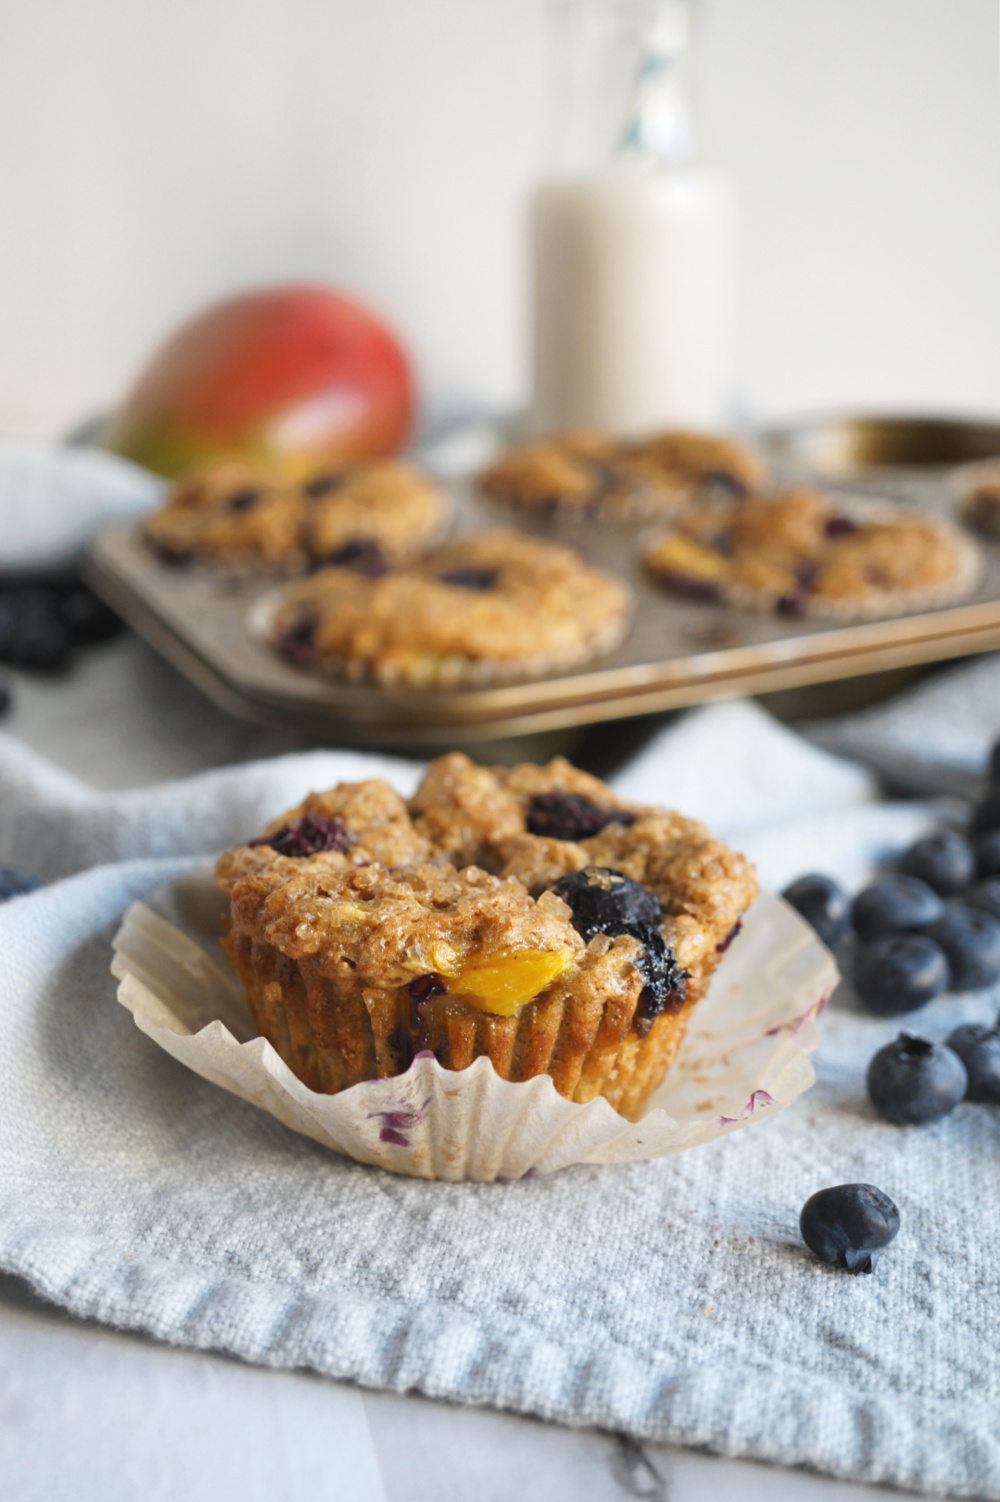 unwrapped vegan blueberry mango muffin